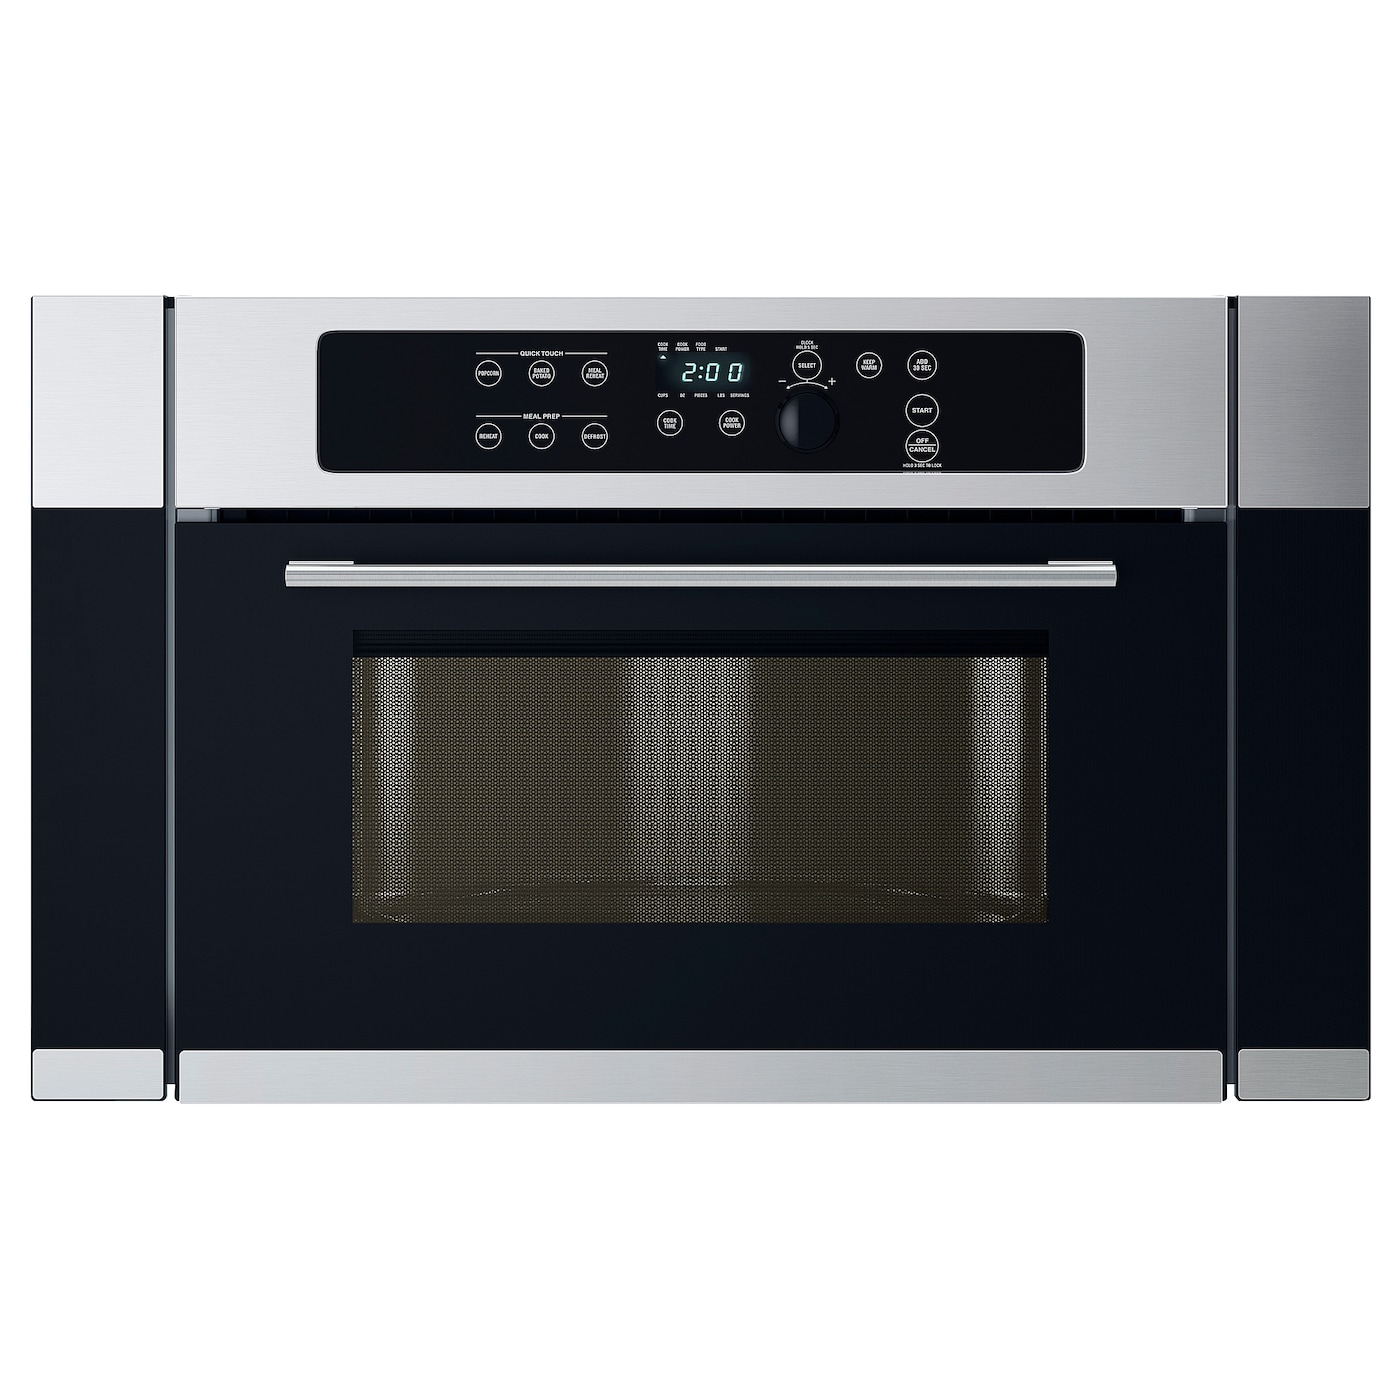 Nutid Microwave Oven Stainless Steel